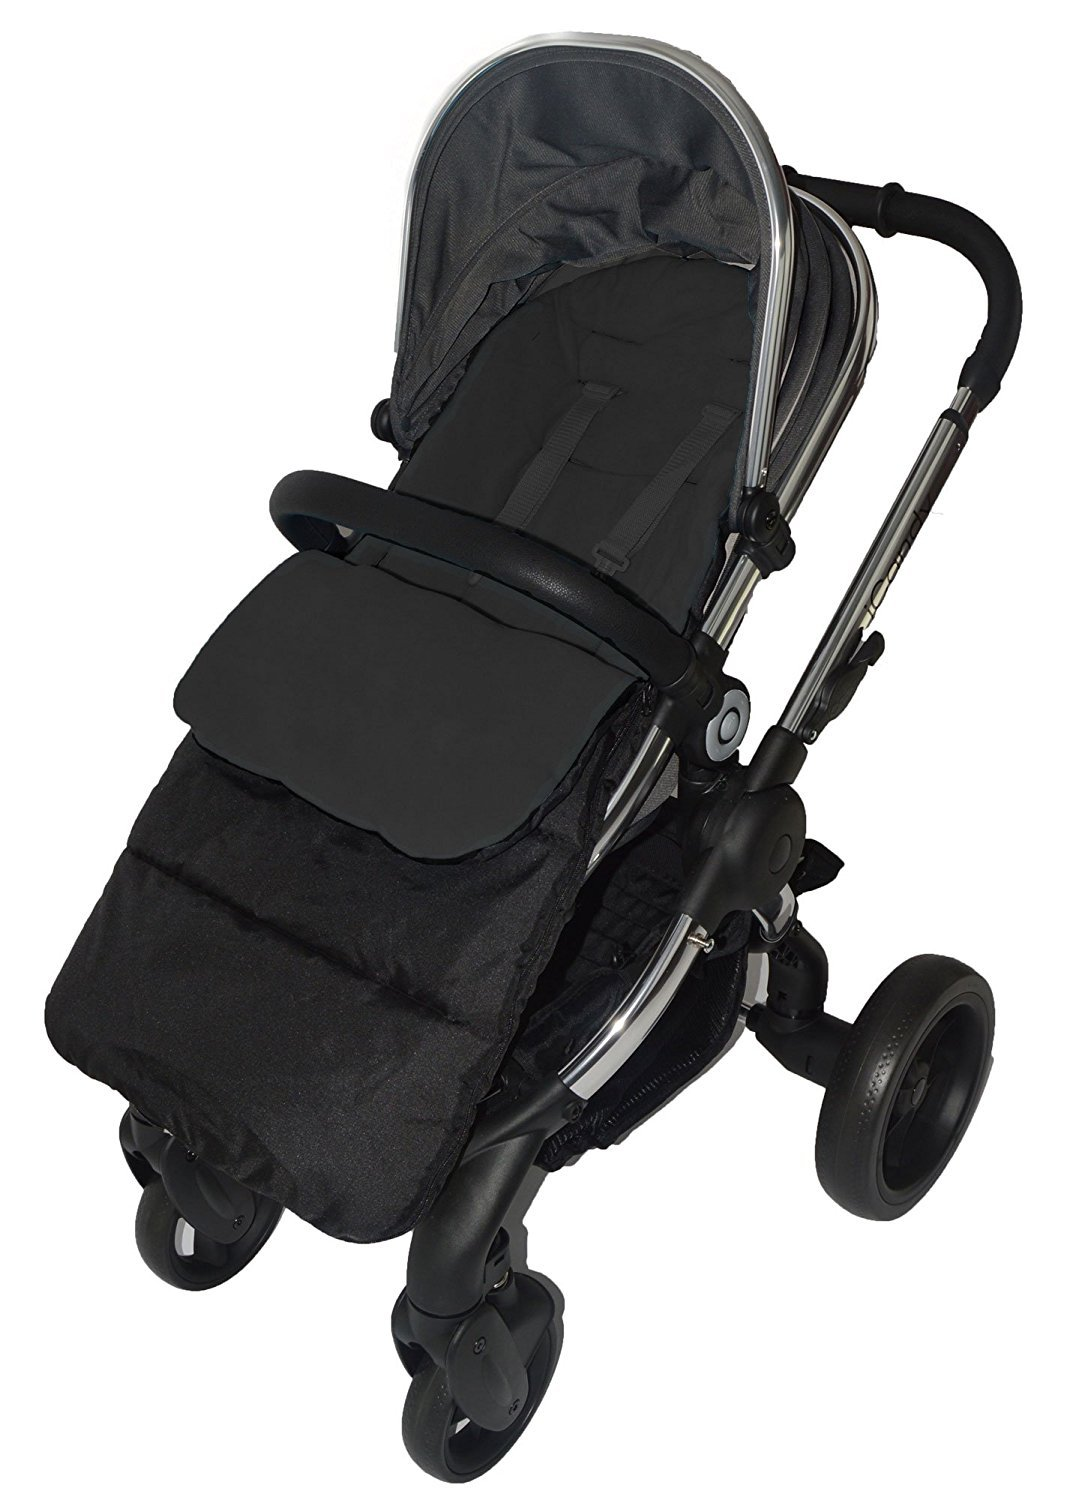 Footmuff Cosy Toes Compatible with Hauck Pushchair Black Jack